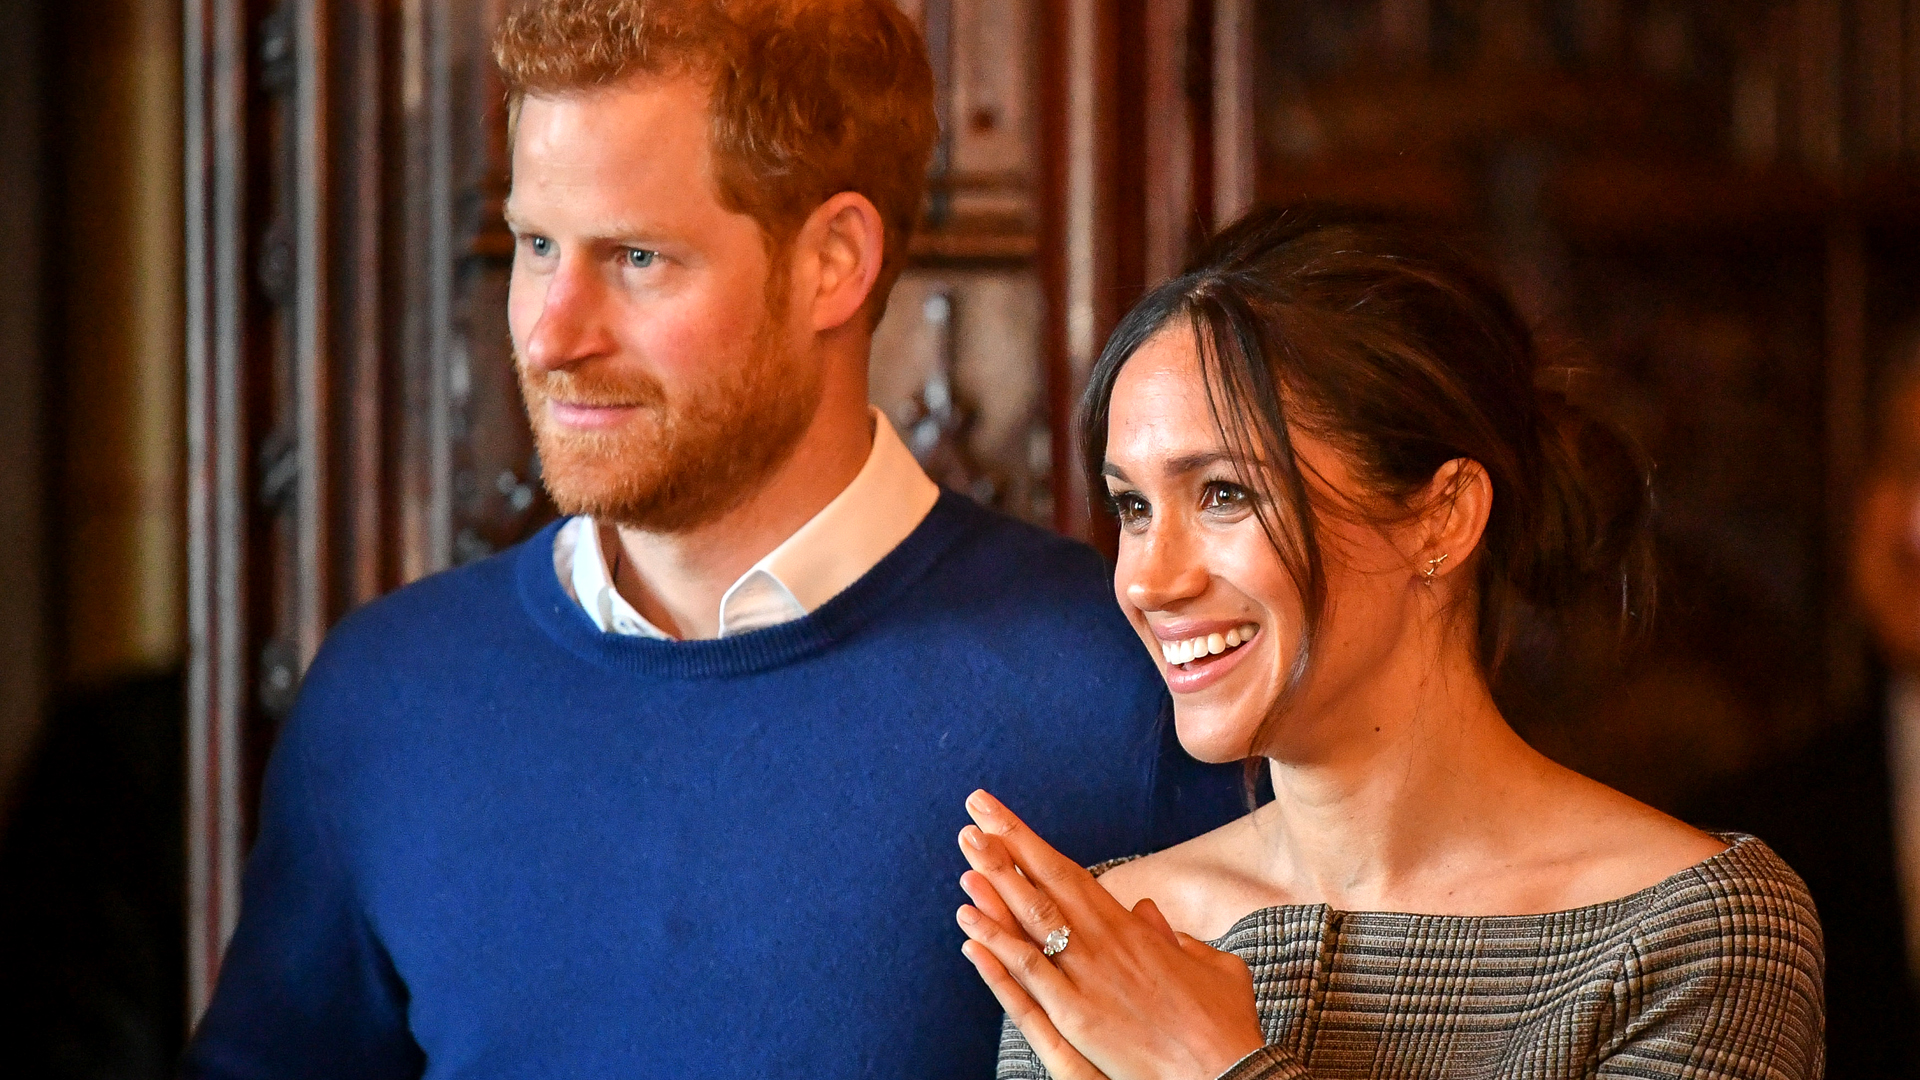 Prince Harry and Meghan Markle at an event.